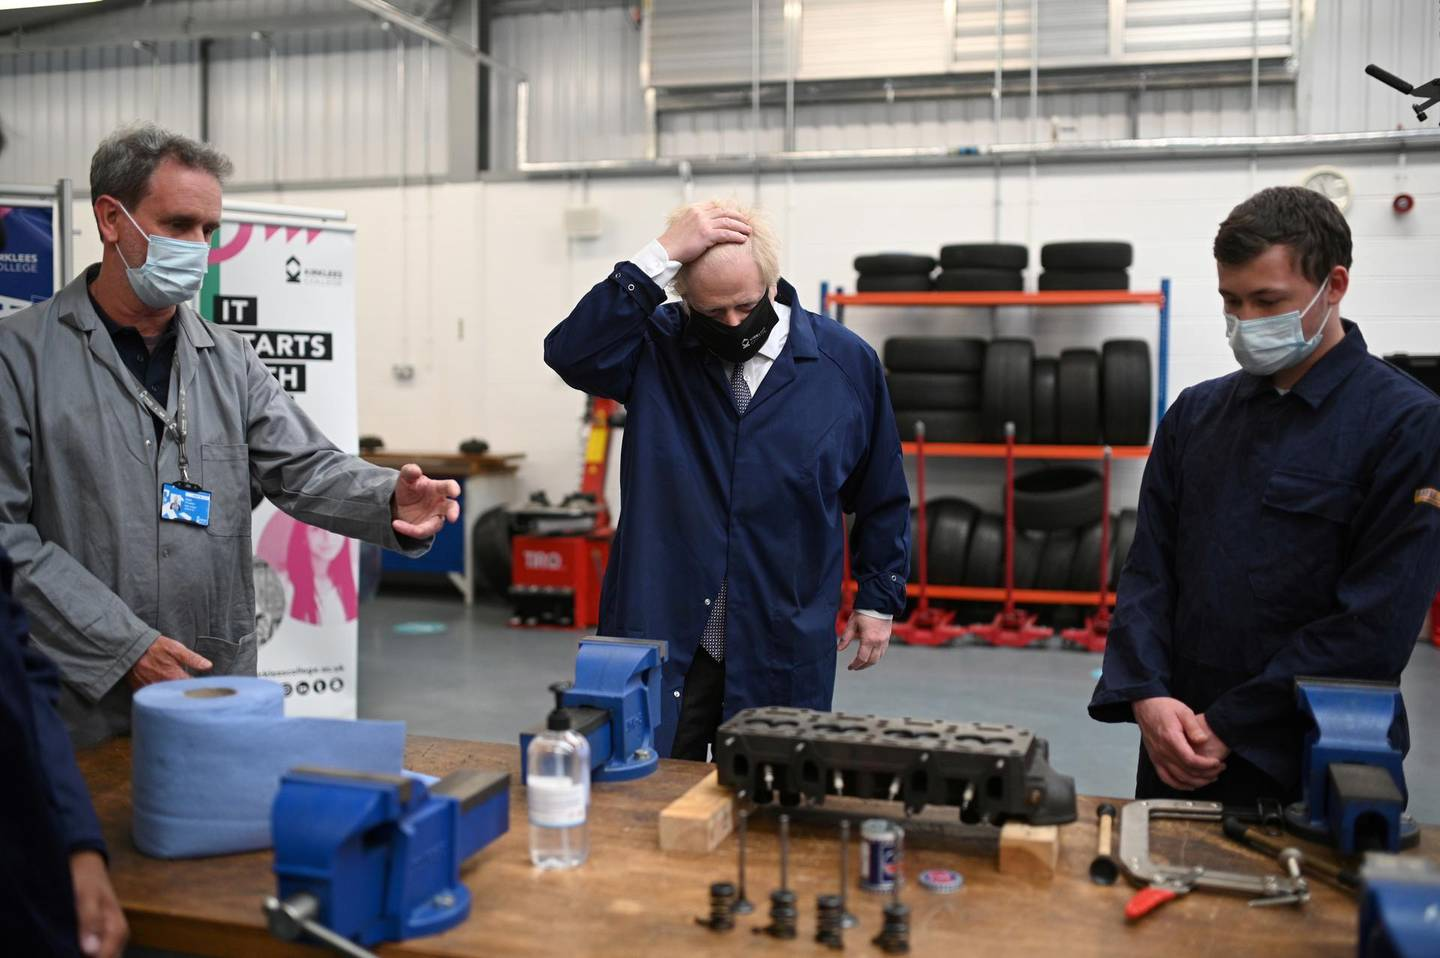 Britain's Prime Minister Boris Johnson (C) gestures in the automotive shop during a visit to Kirklees College Springfield Sixth Form Centre in Dewsbury, West Yorkshire, Britain June 18, 2021. Oli Scarff/Pool via REUTERS